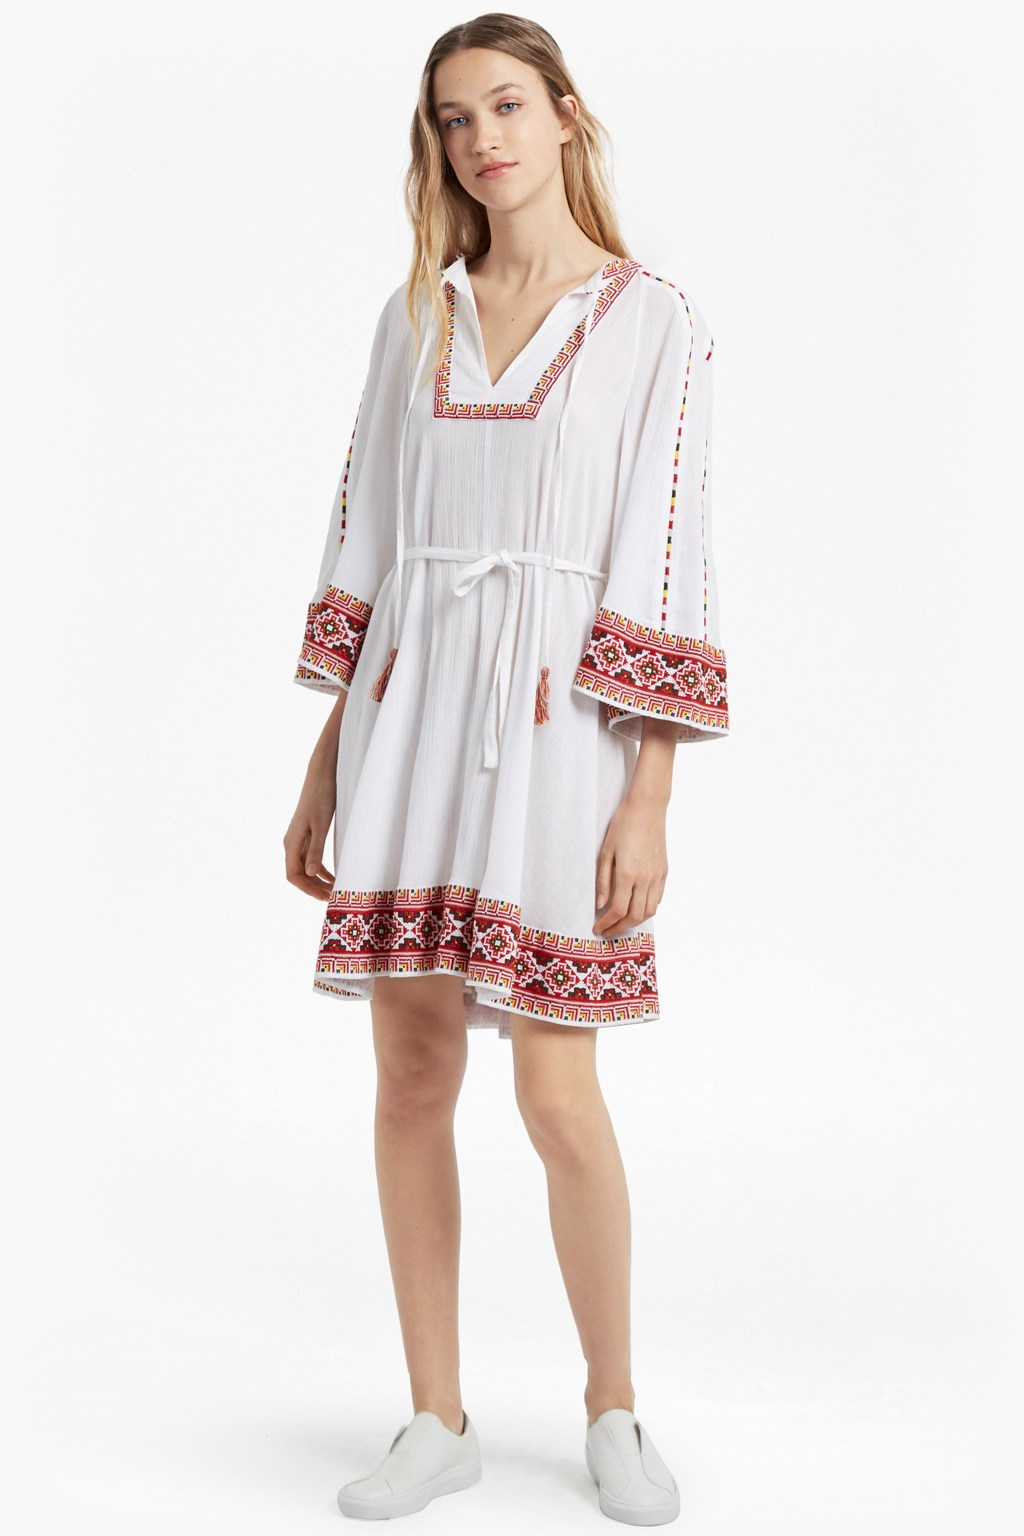 db2bc7627810 Adanna Crinkle Embroidered Smock Dress. loading images.